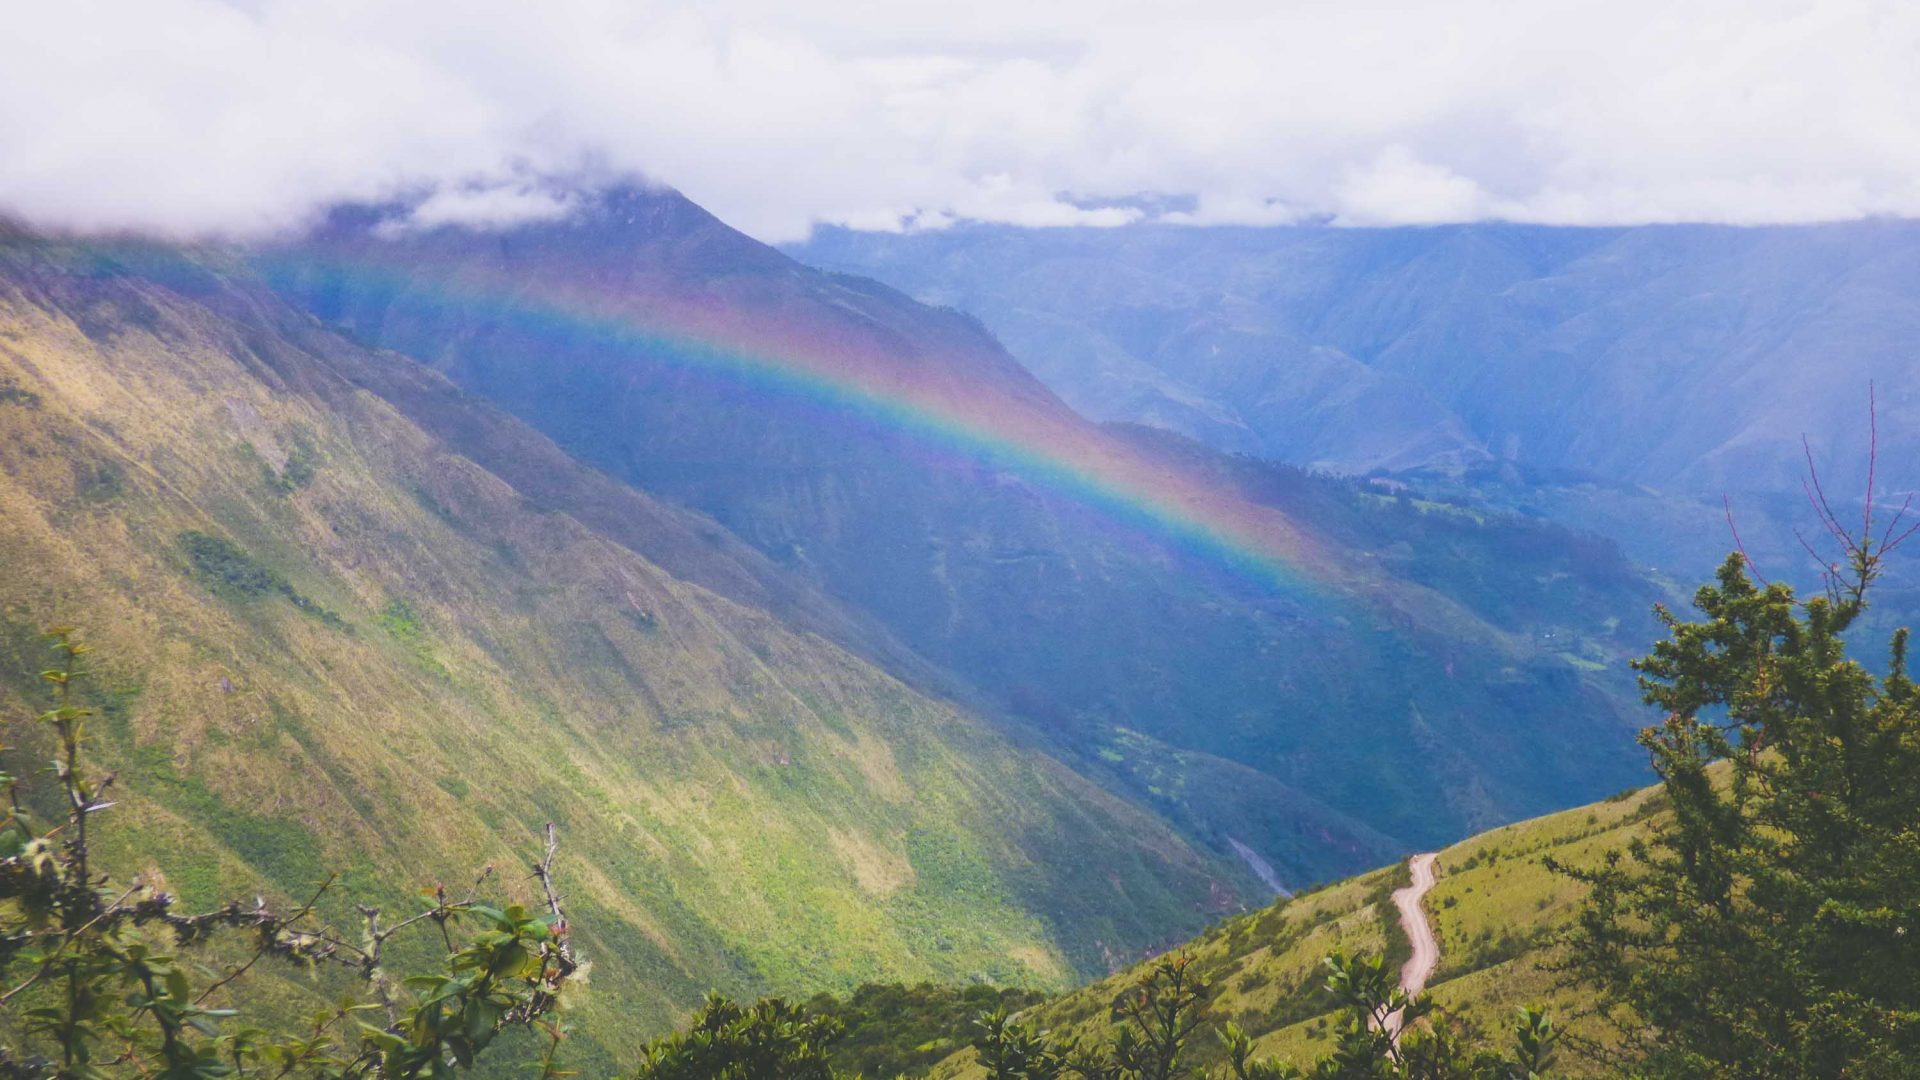 A rainbow falls over the valley during the Salkantay hike in Peru.